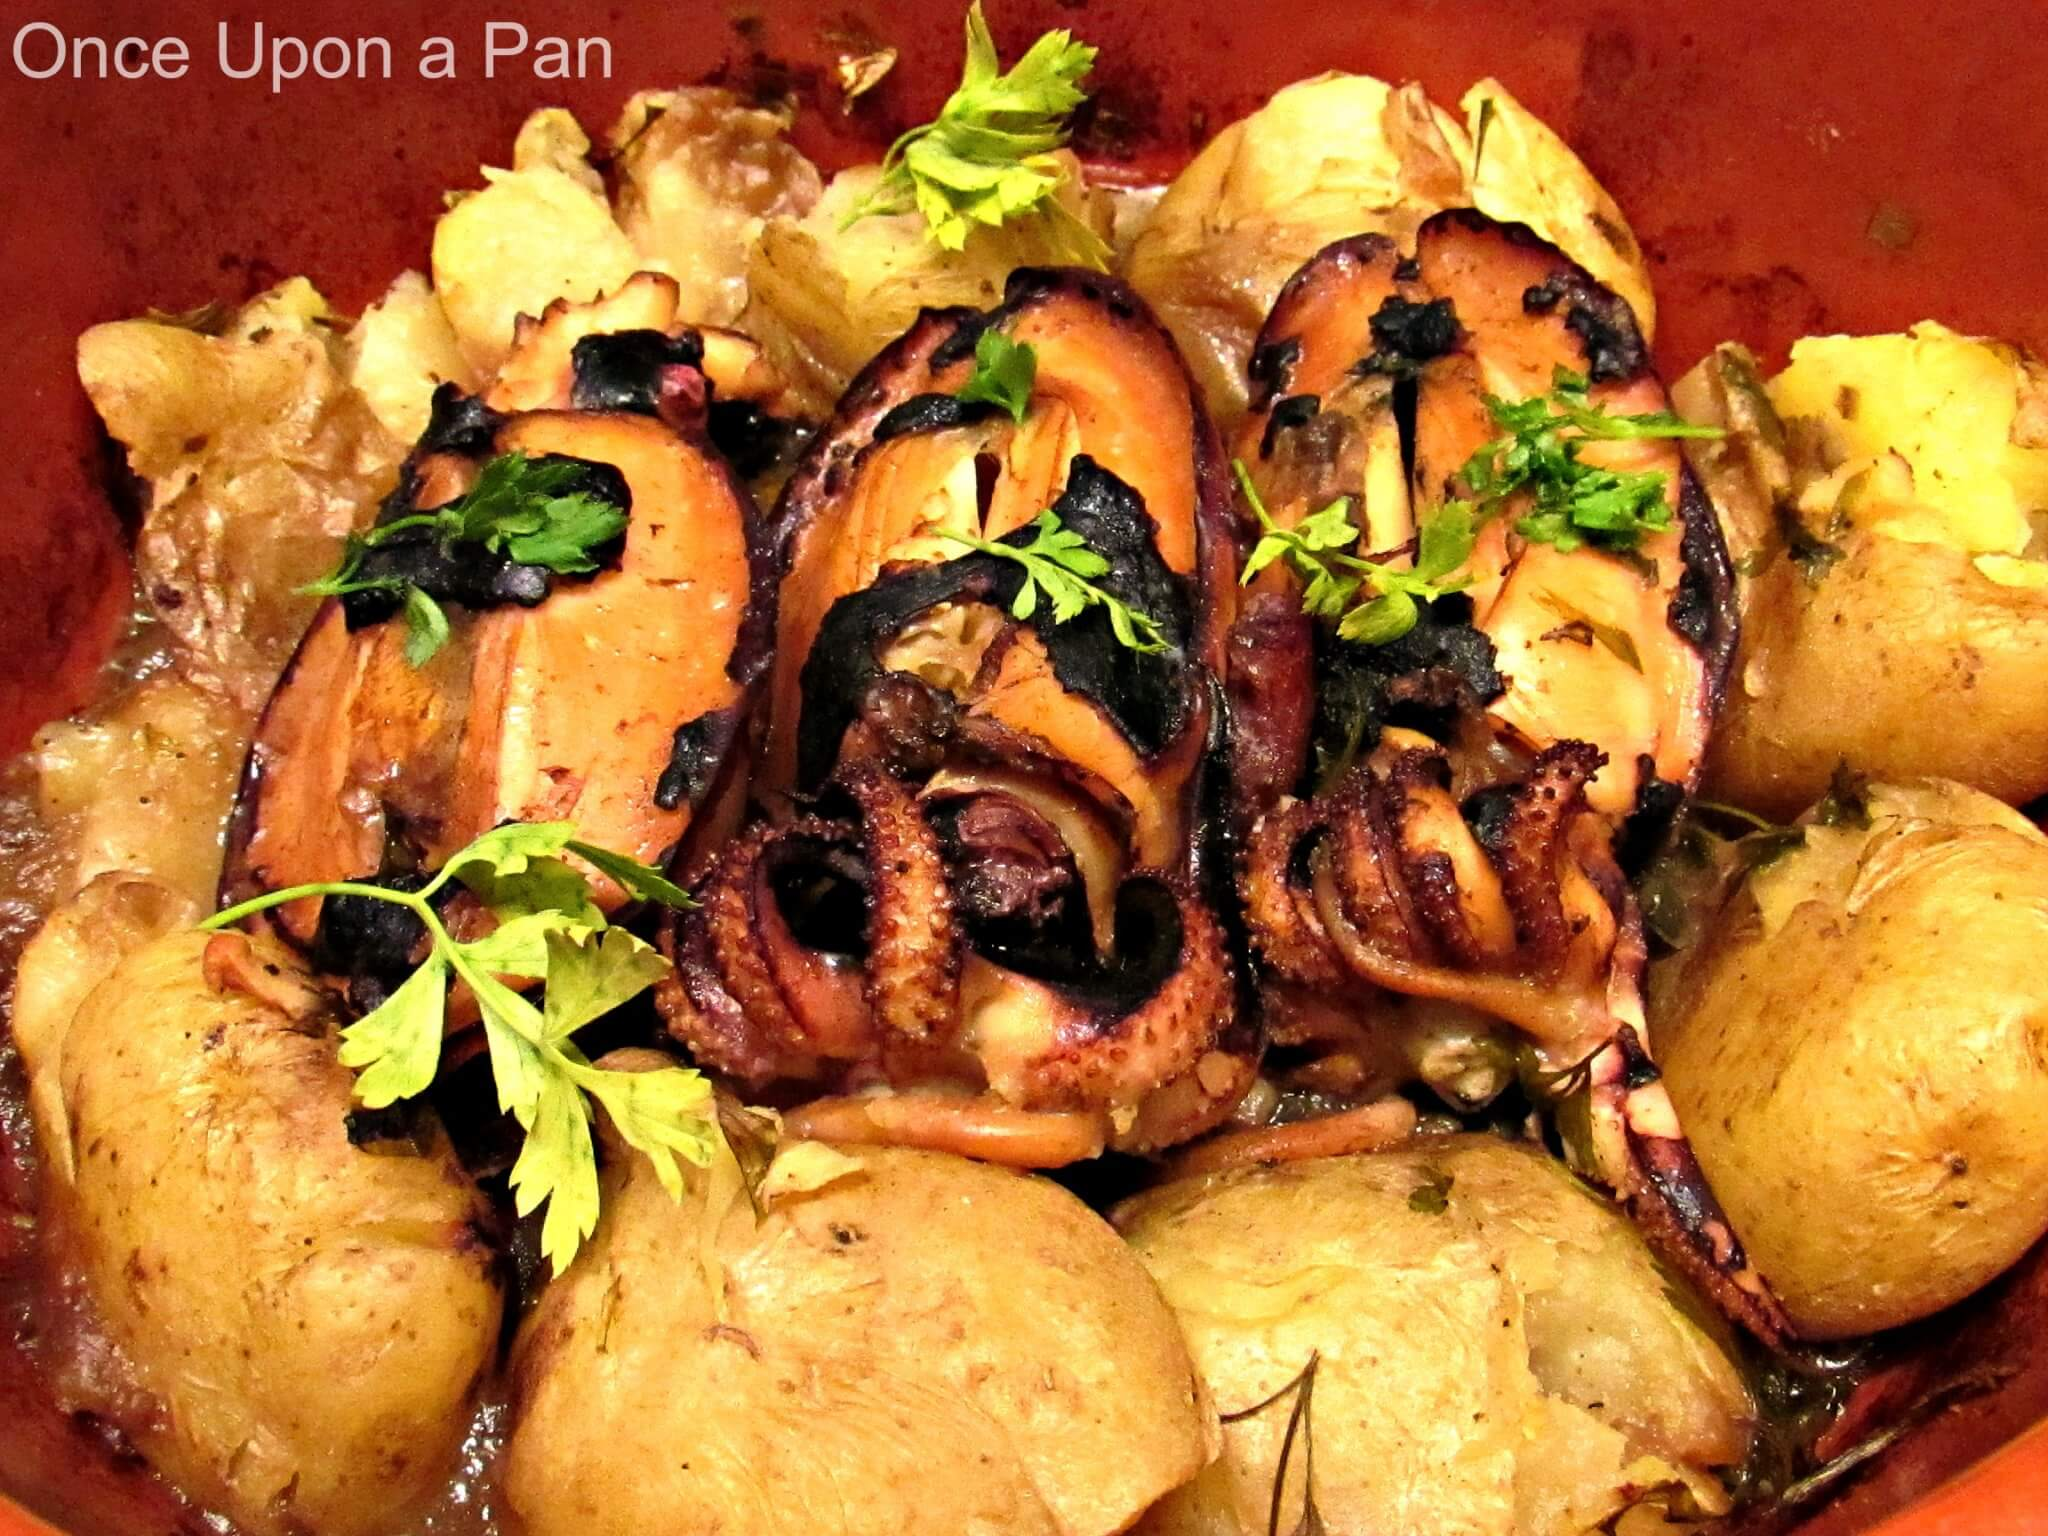 Cuttlefish in the oven with potatoes